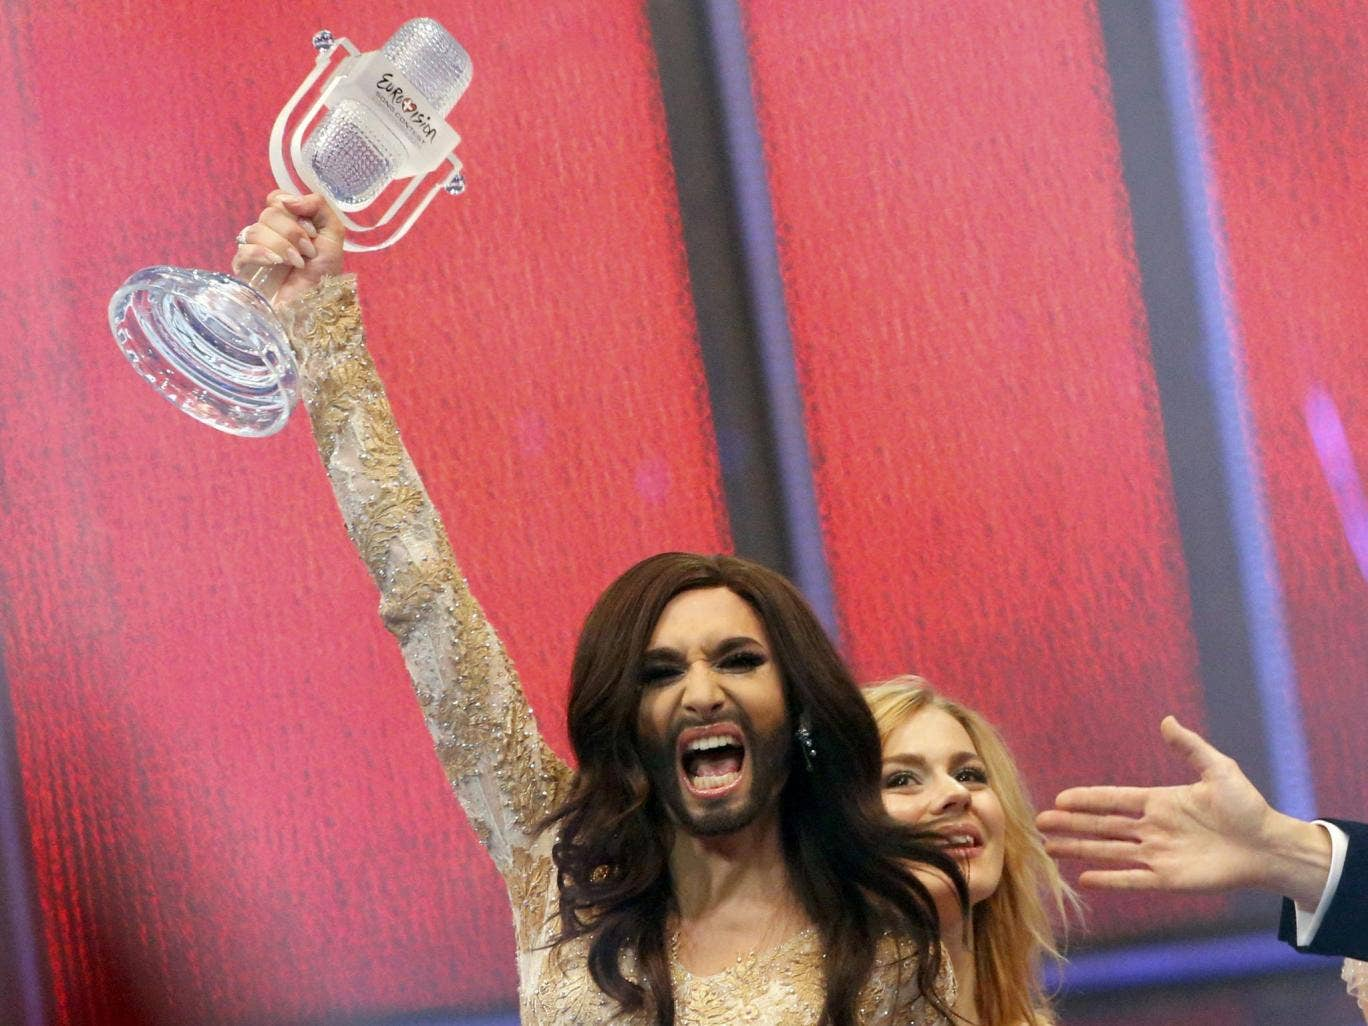 Conchita Wurst representing Austria celebrates after winning the grand final of the 59th Eurovision Song Contest